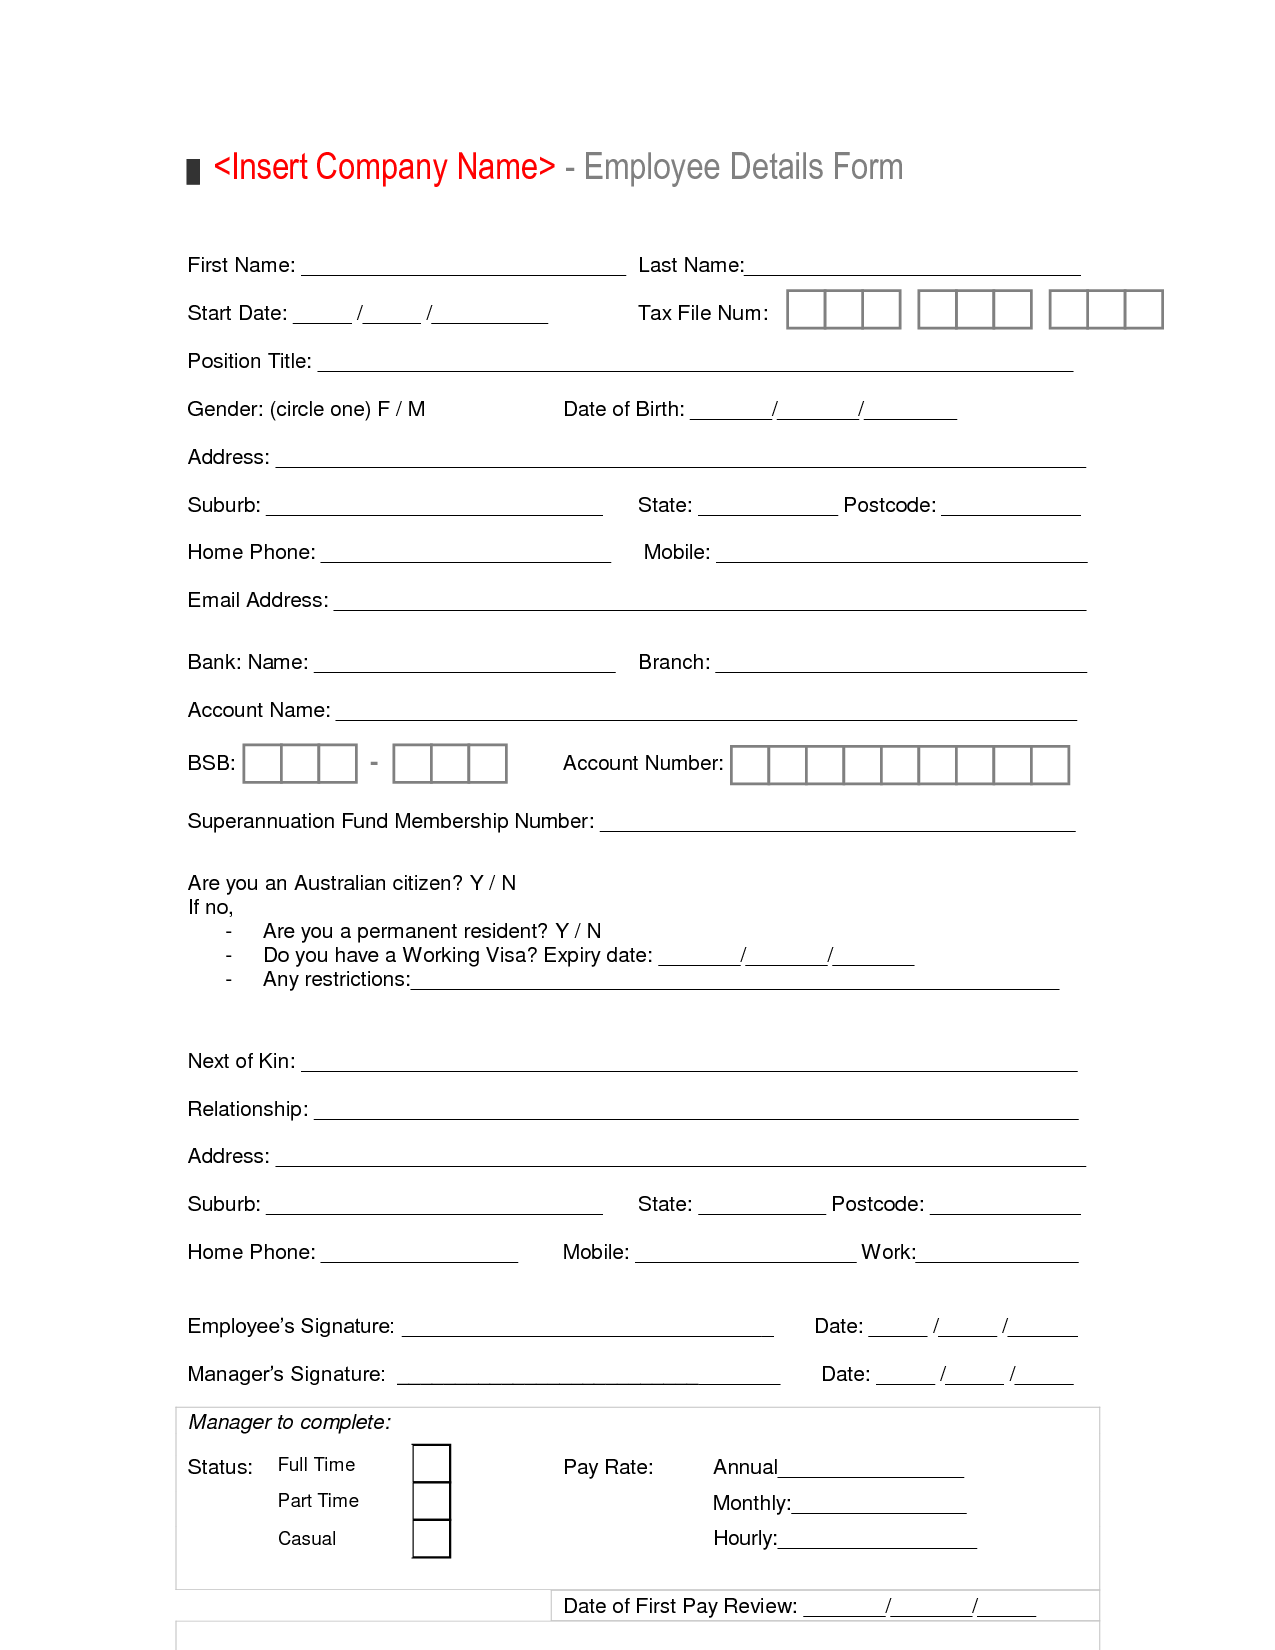 Perfect New Hire Employee Details Form Template Sample : Vlashed